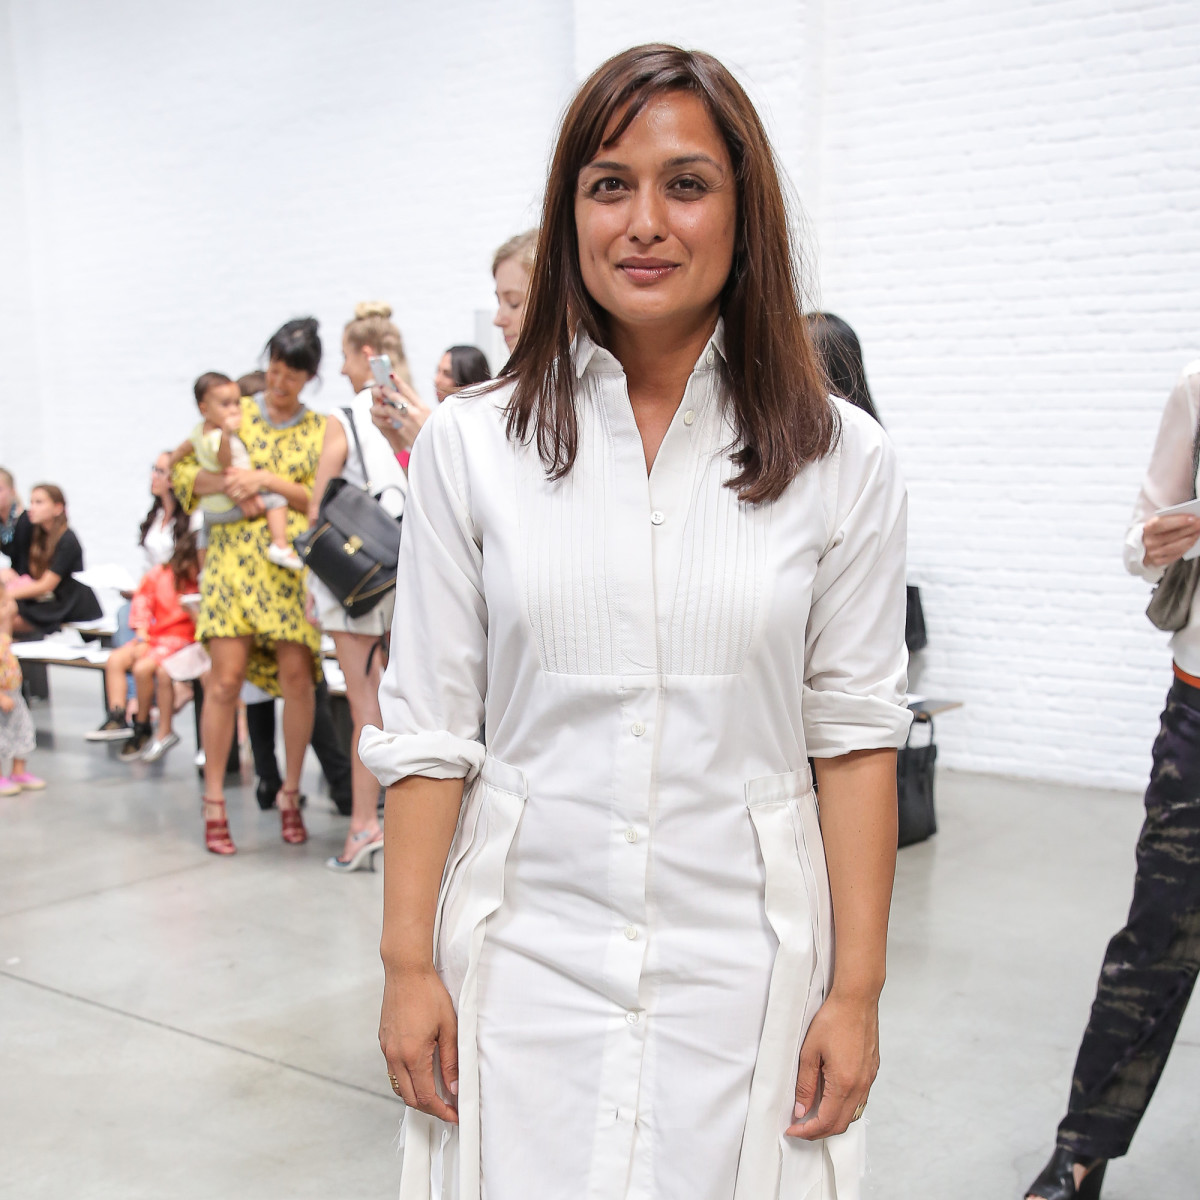 Roopal Patel in 2014. Photo: Chelsea Lauren/Getty Images